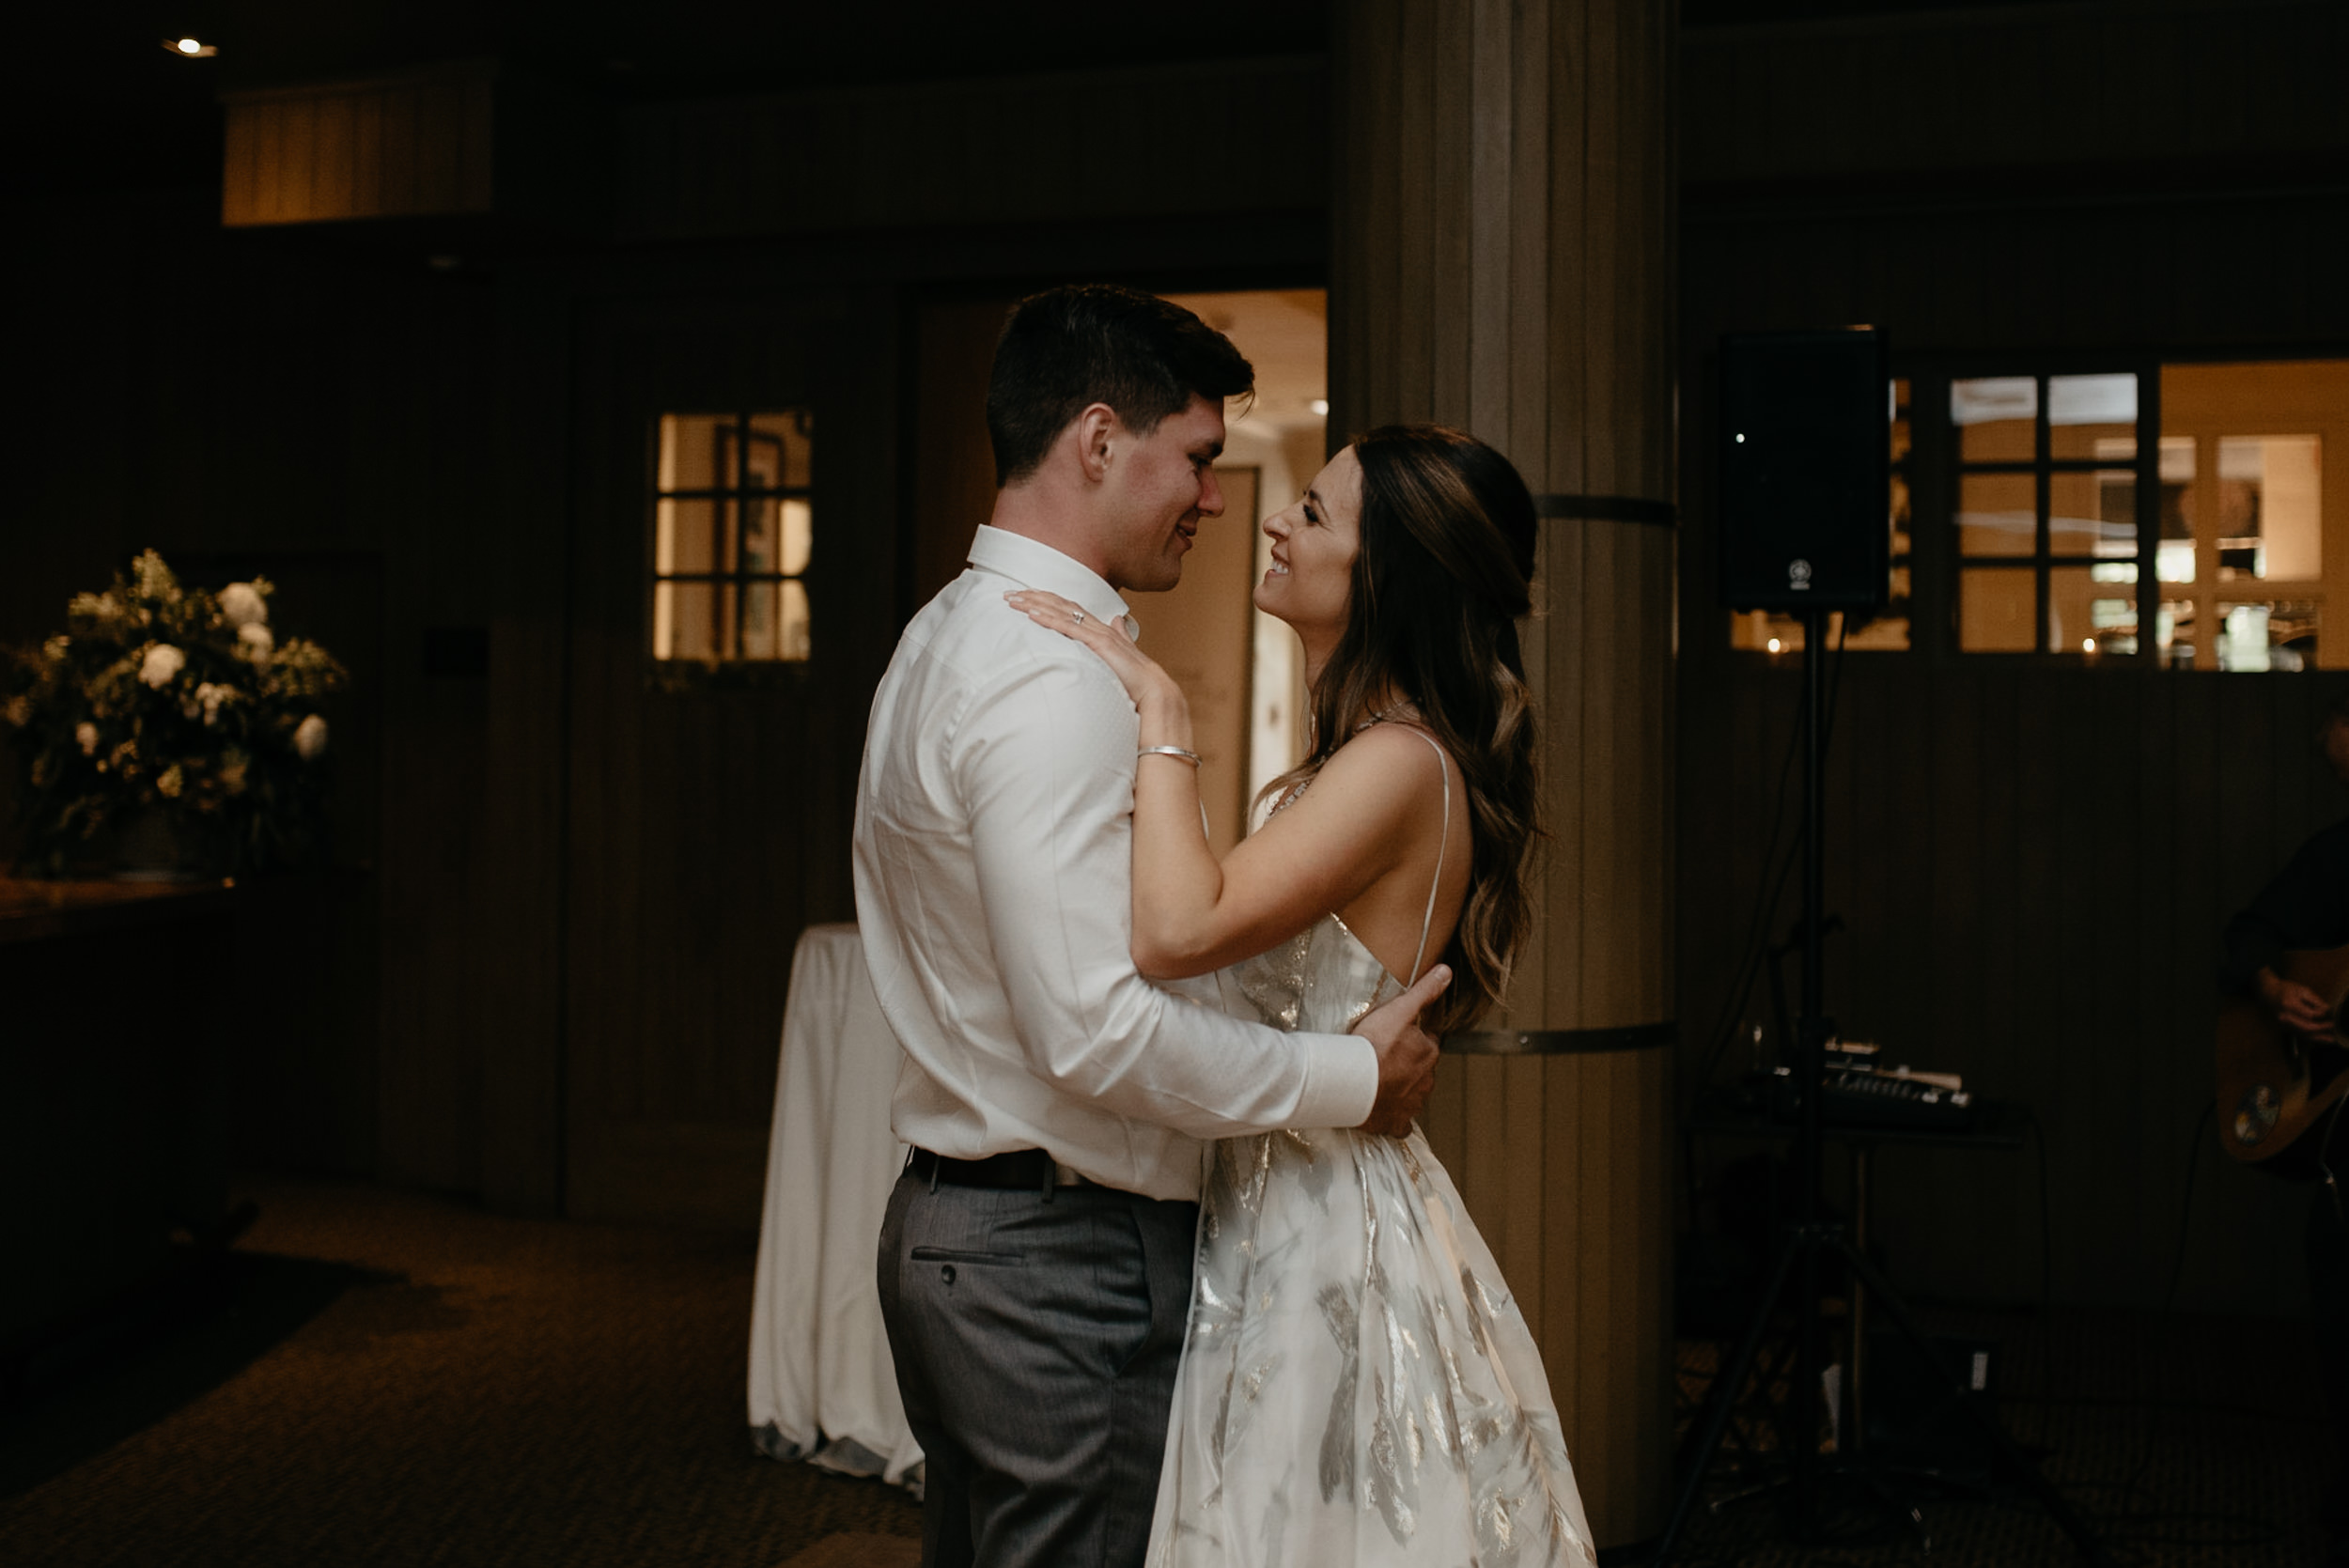 Wedding at The Little Nell in Aspen, Colorado. Bride and groom's first dance.